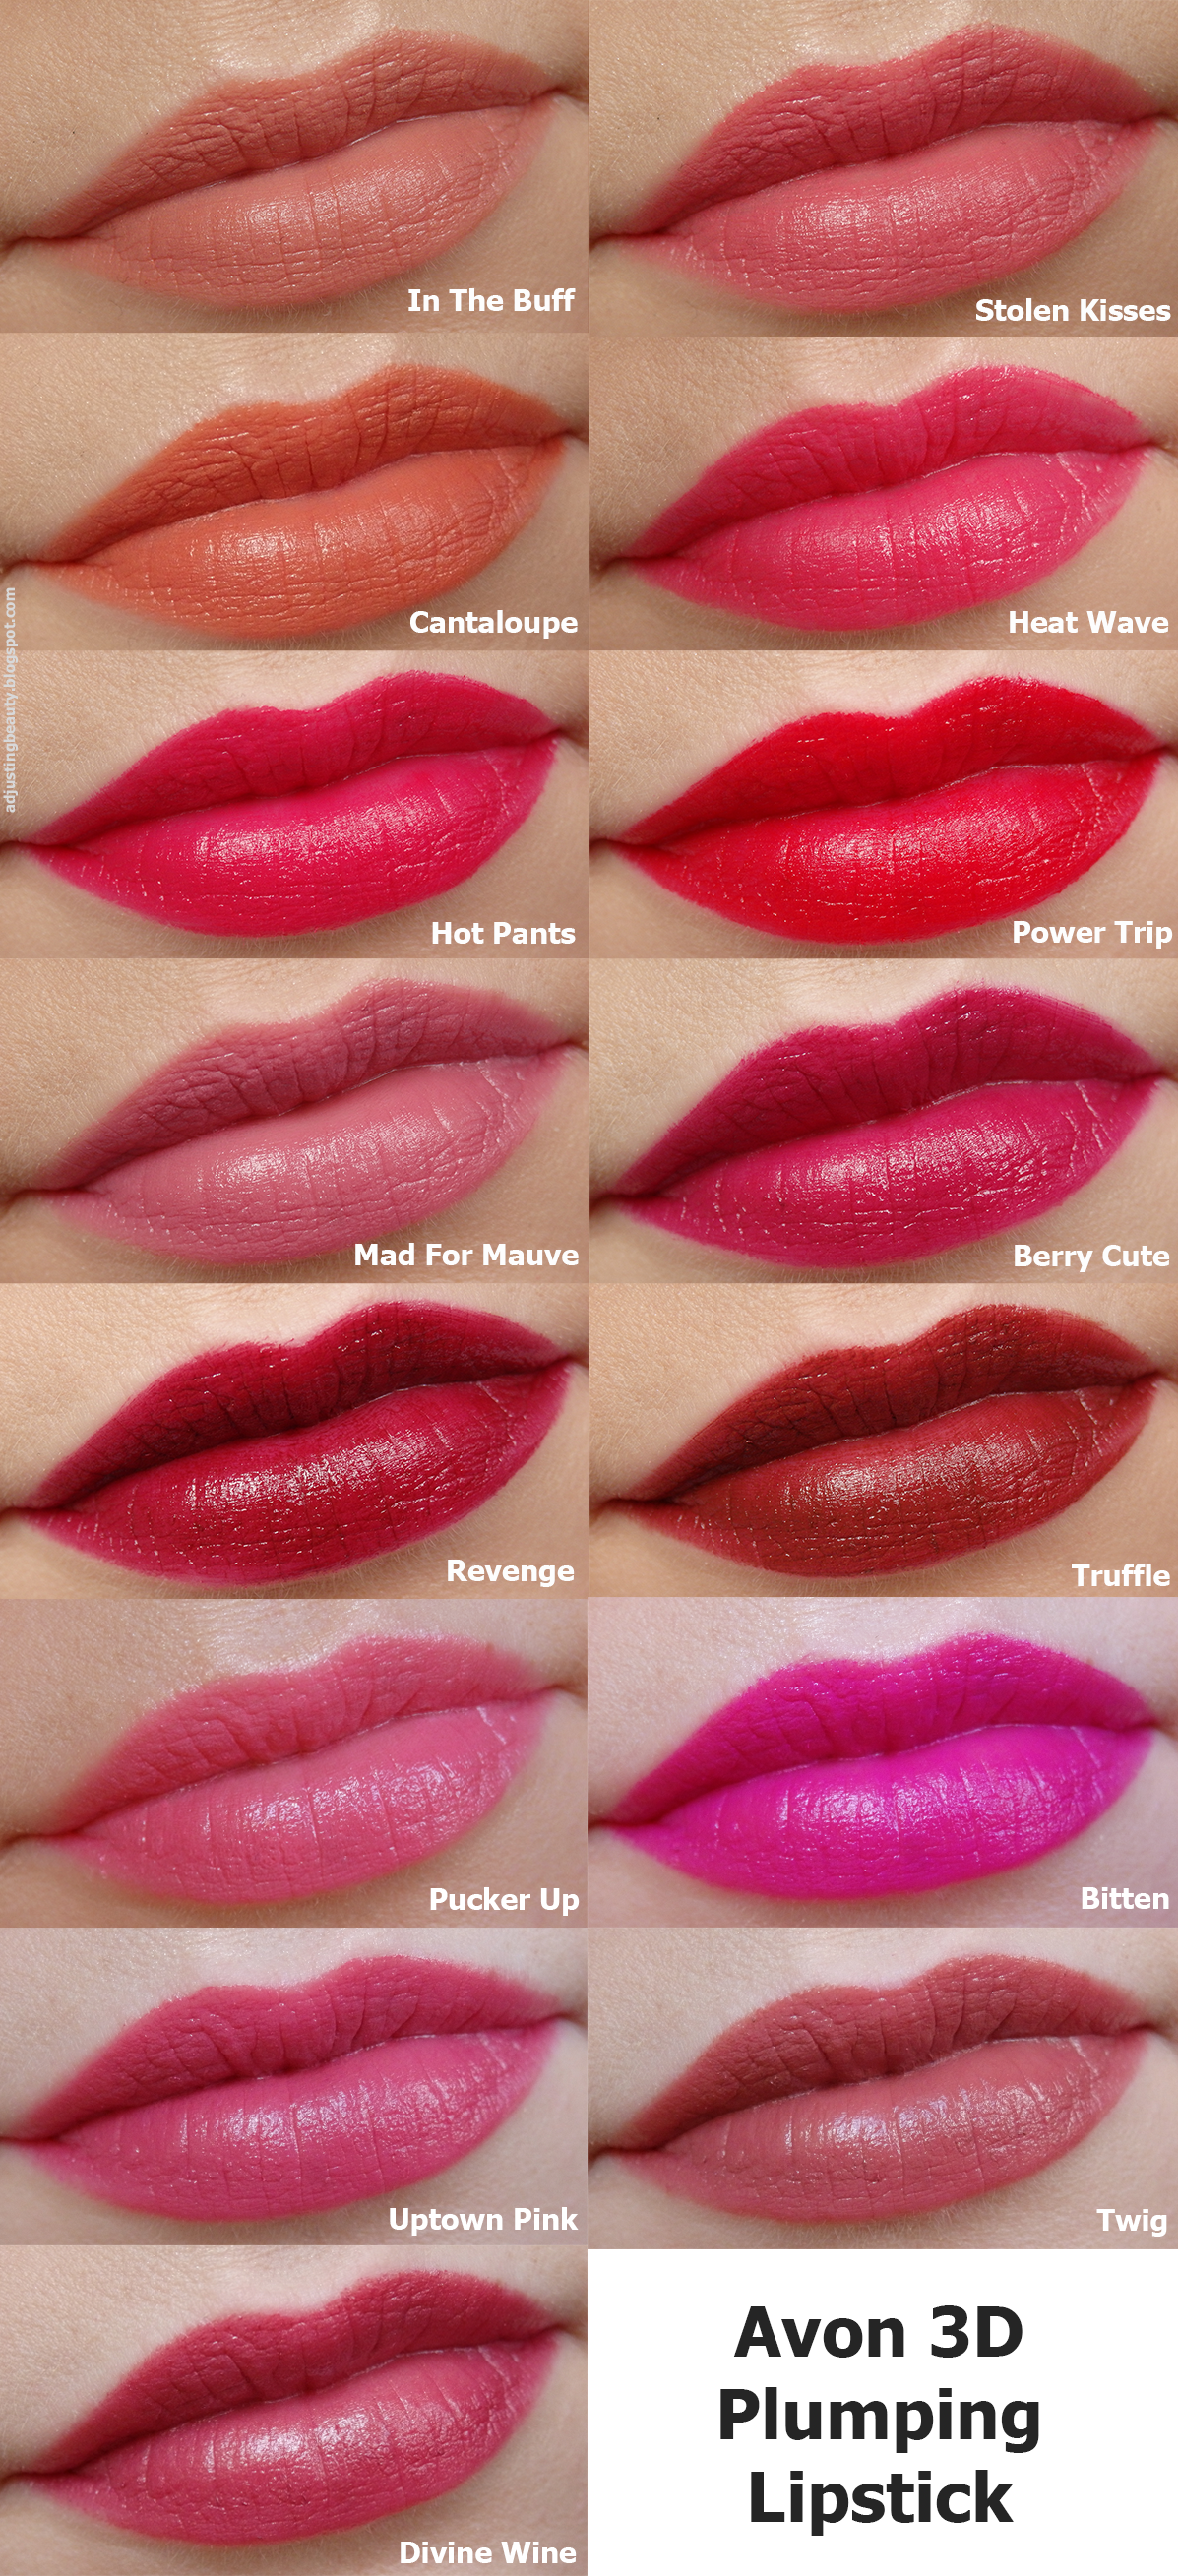 Review Of Avon 3D Plumping Lipsticks (Beyond Color